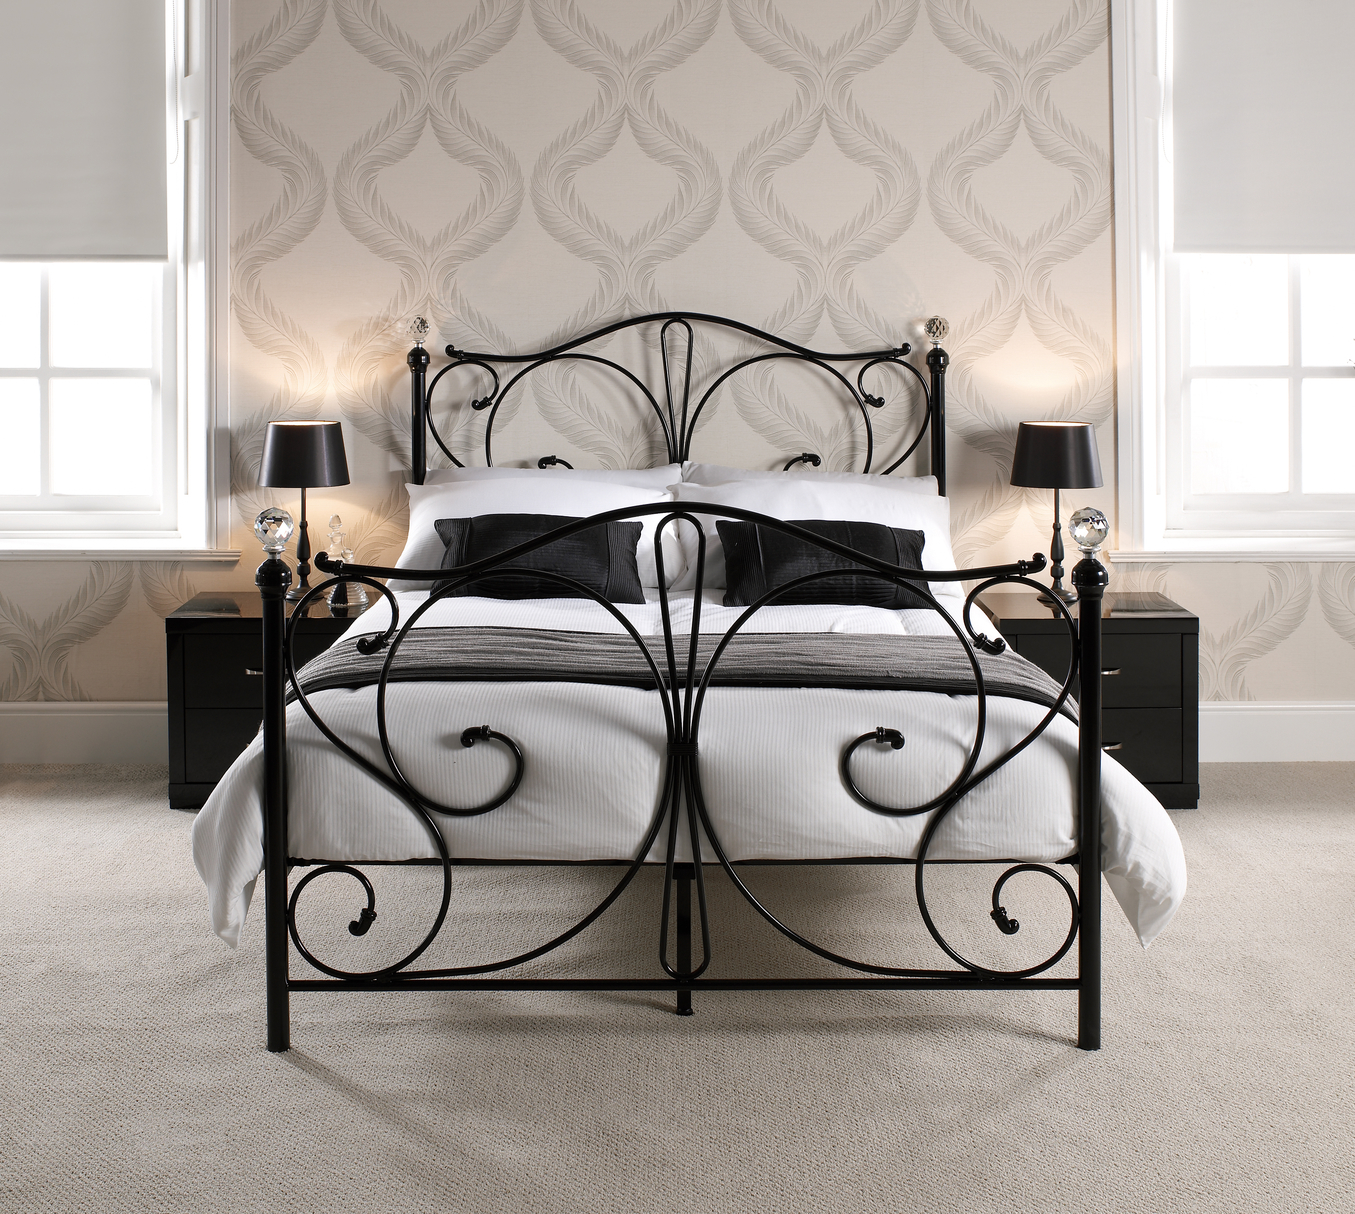 FLORENCE SINGLE BED 3'